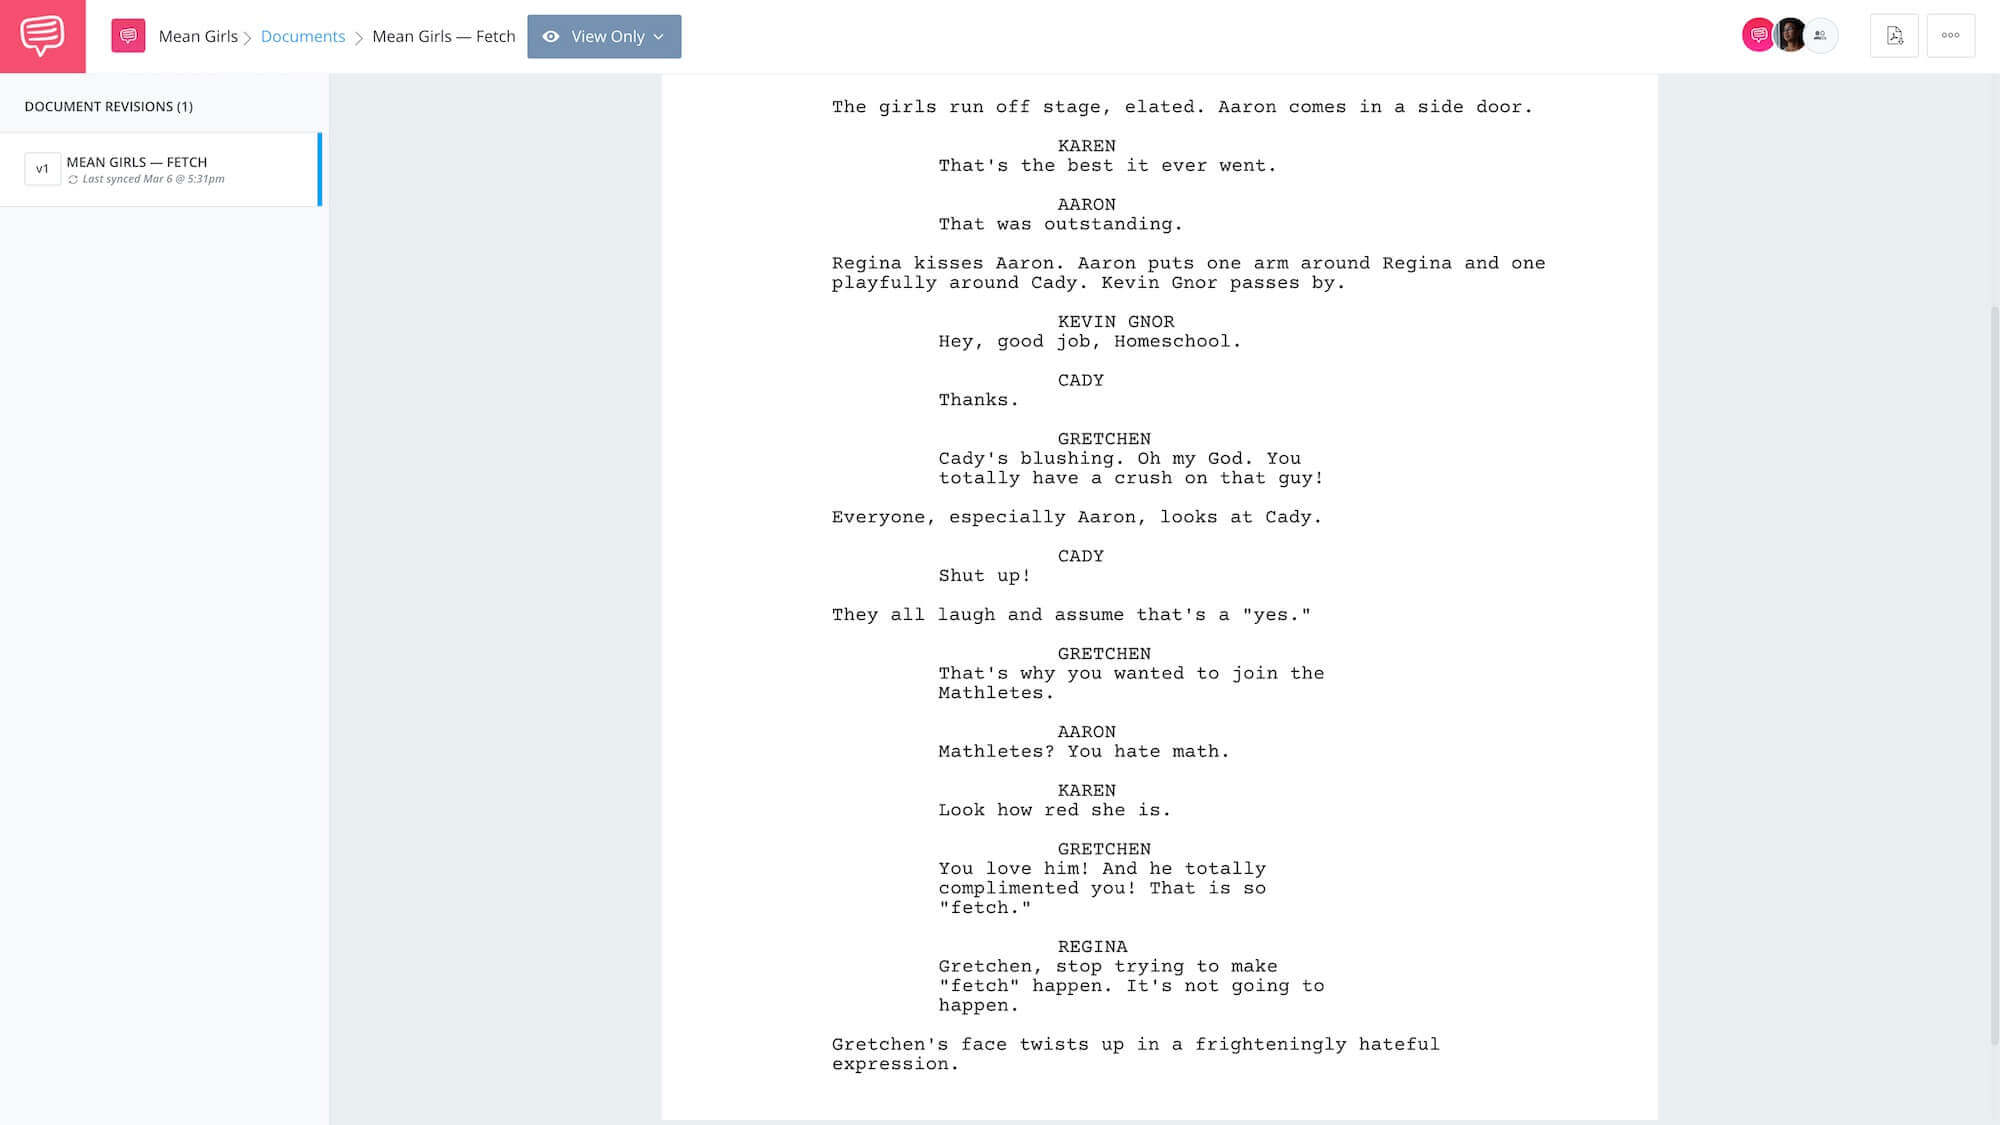 Mean Girls Script Teardown - Fetch App Tie-In - StudioBinder